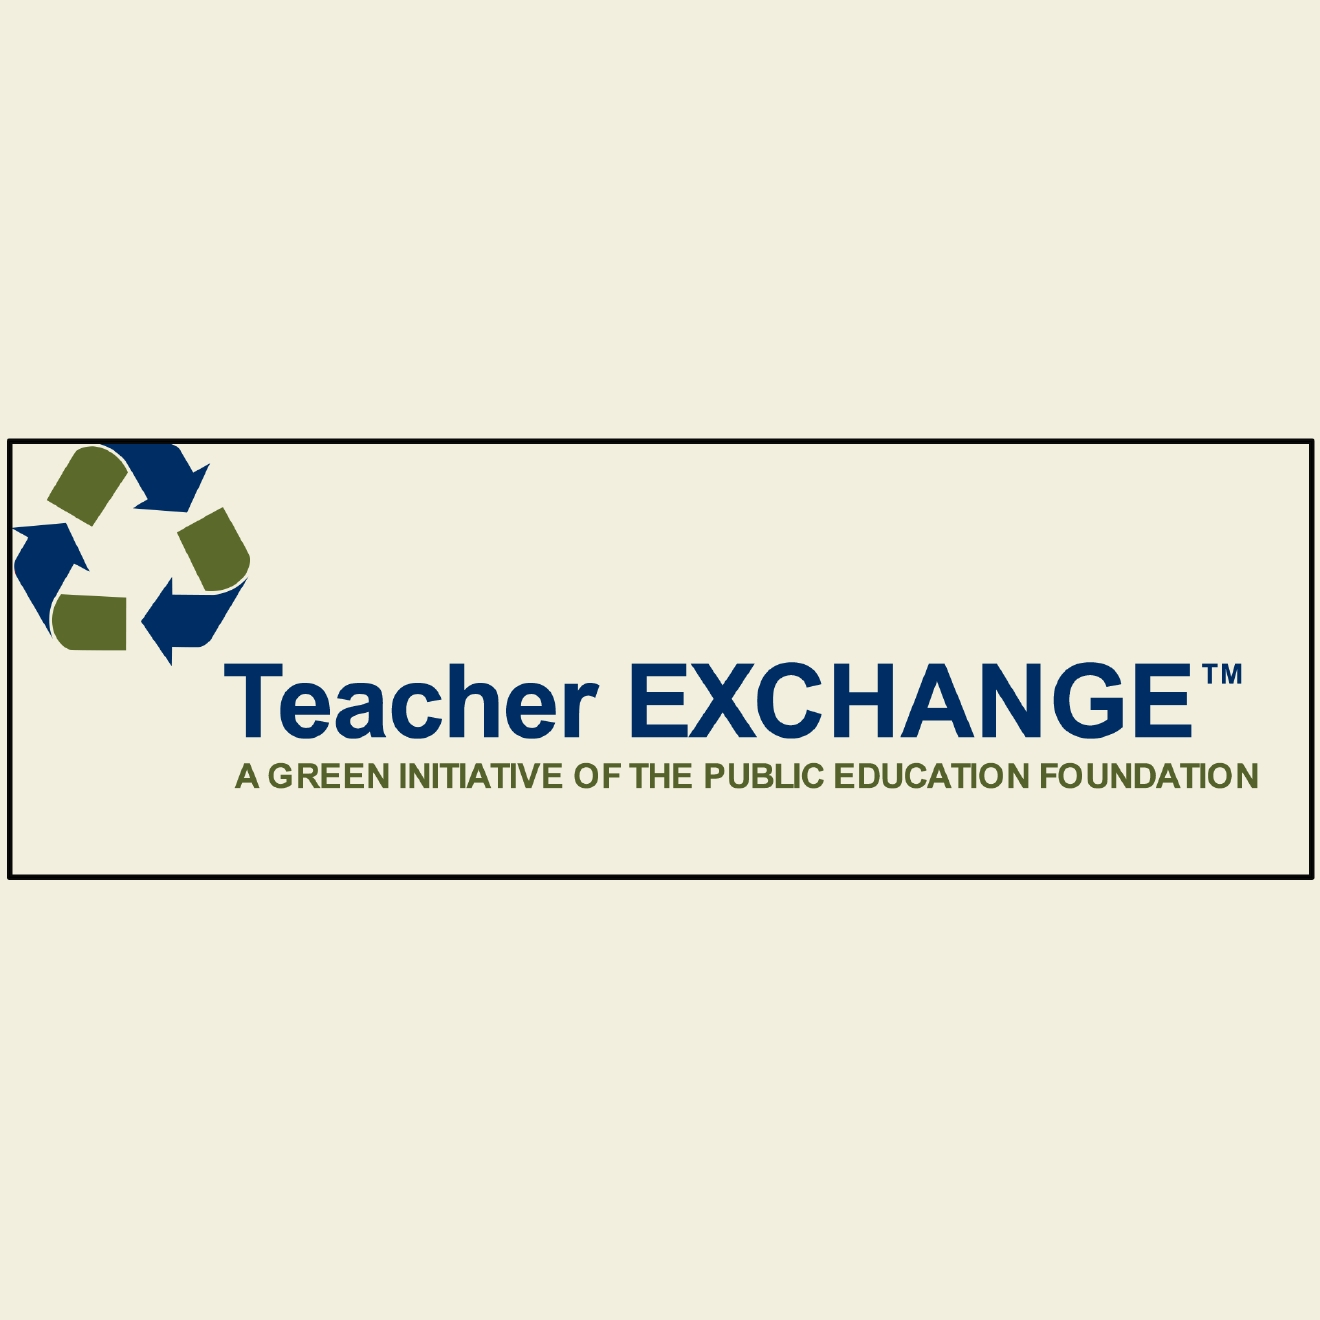 The Teacher EXCHANGE® provides instructional supplies to public school teachers, helping each of them save hundreds of dollars annually in out-of-pocket expenses. The Teacher EXCHANGE collects new and reused materials, office supplies, convention overstock, books, furniture and other materials from donors to enhance school projects and learning.  More information can be found at http://www.thepef.org/programs_exchange.html